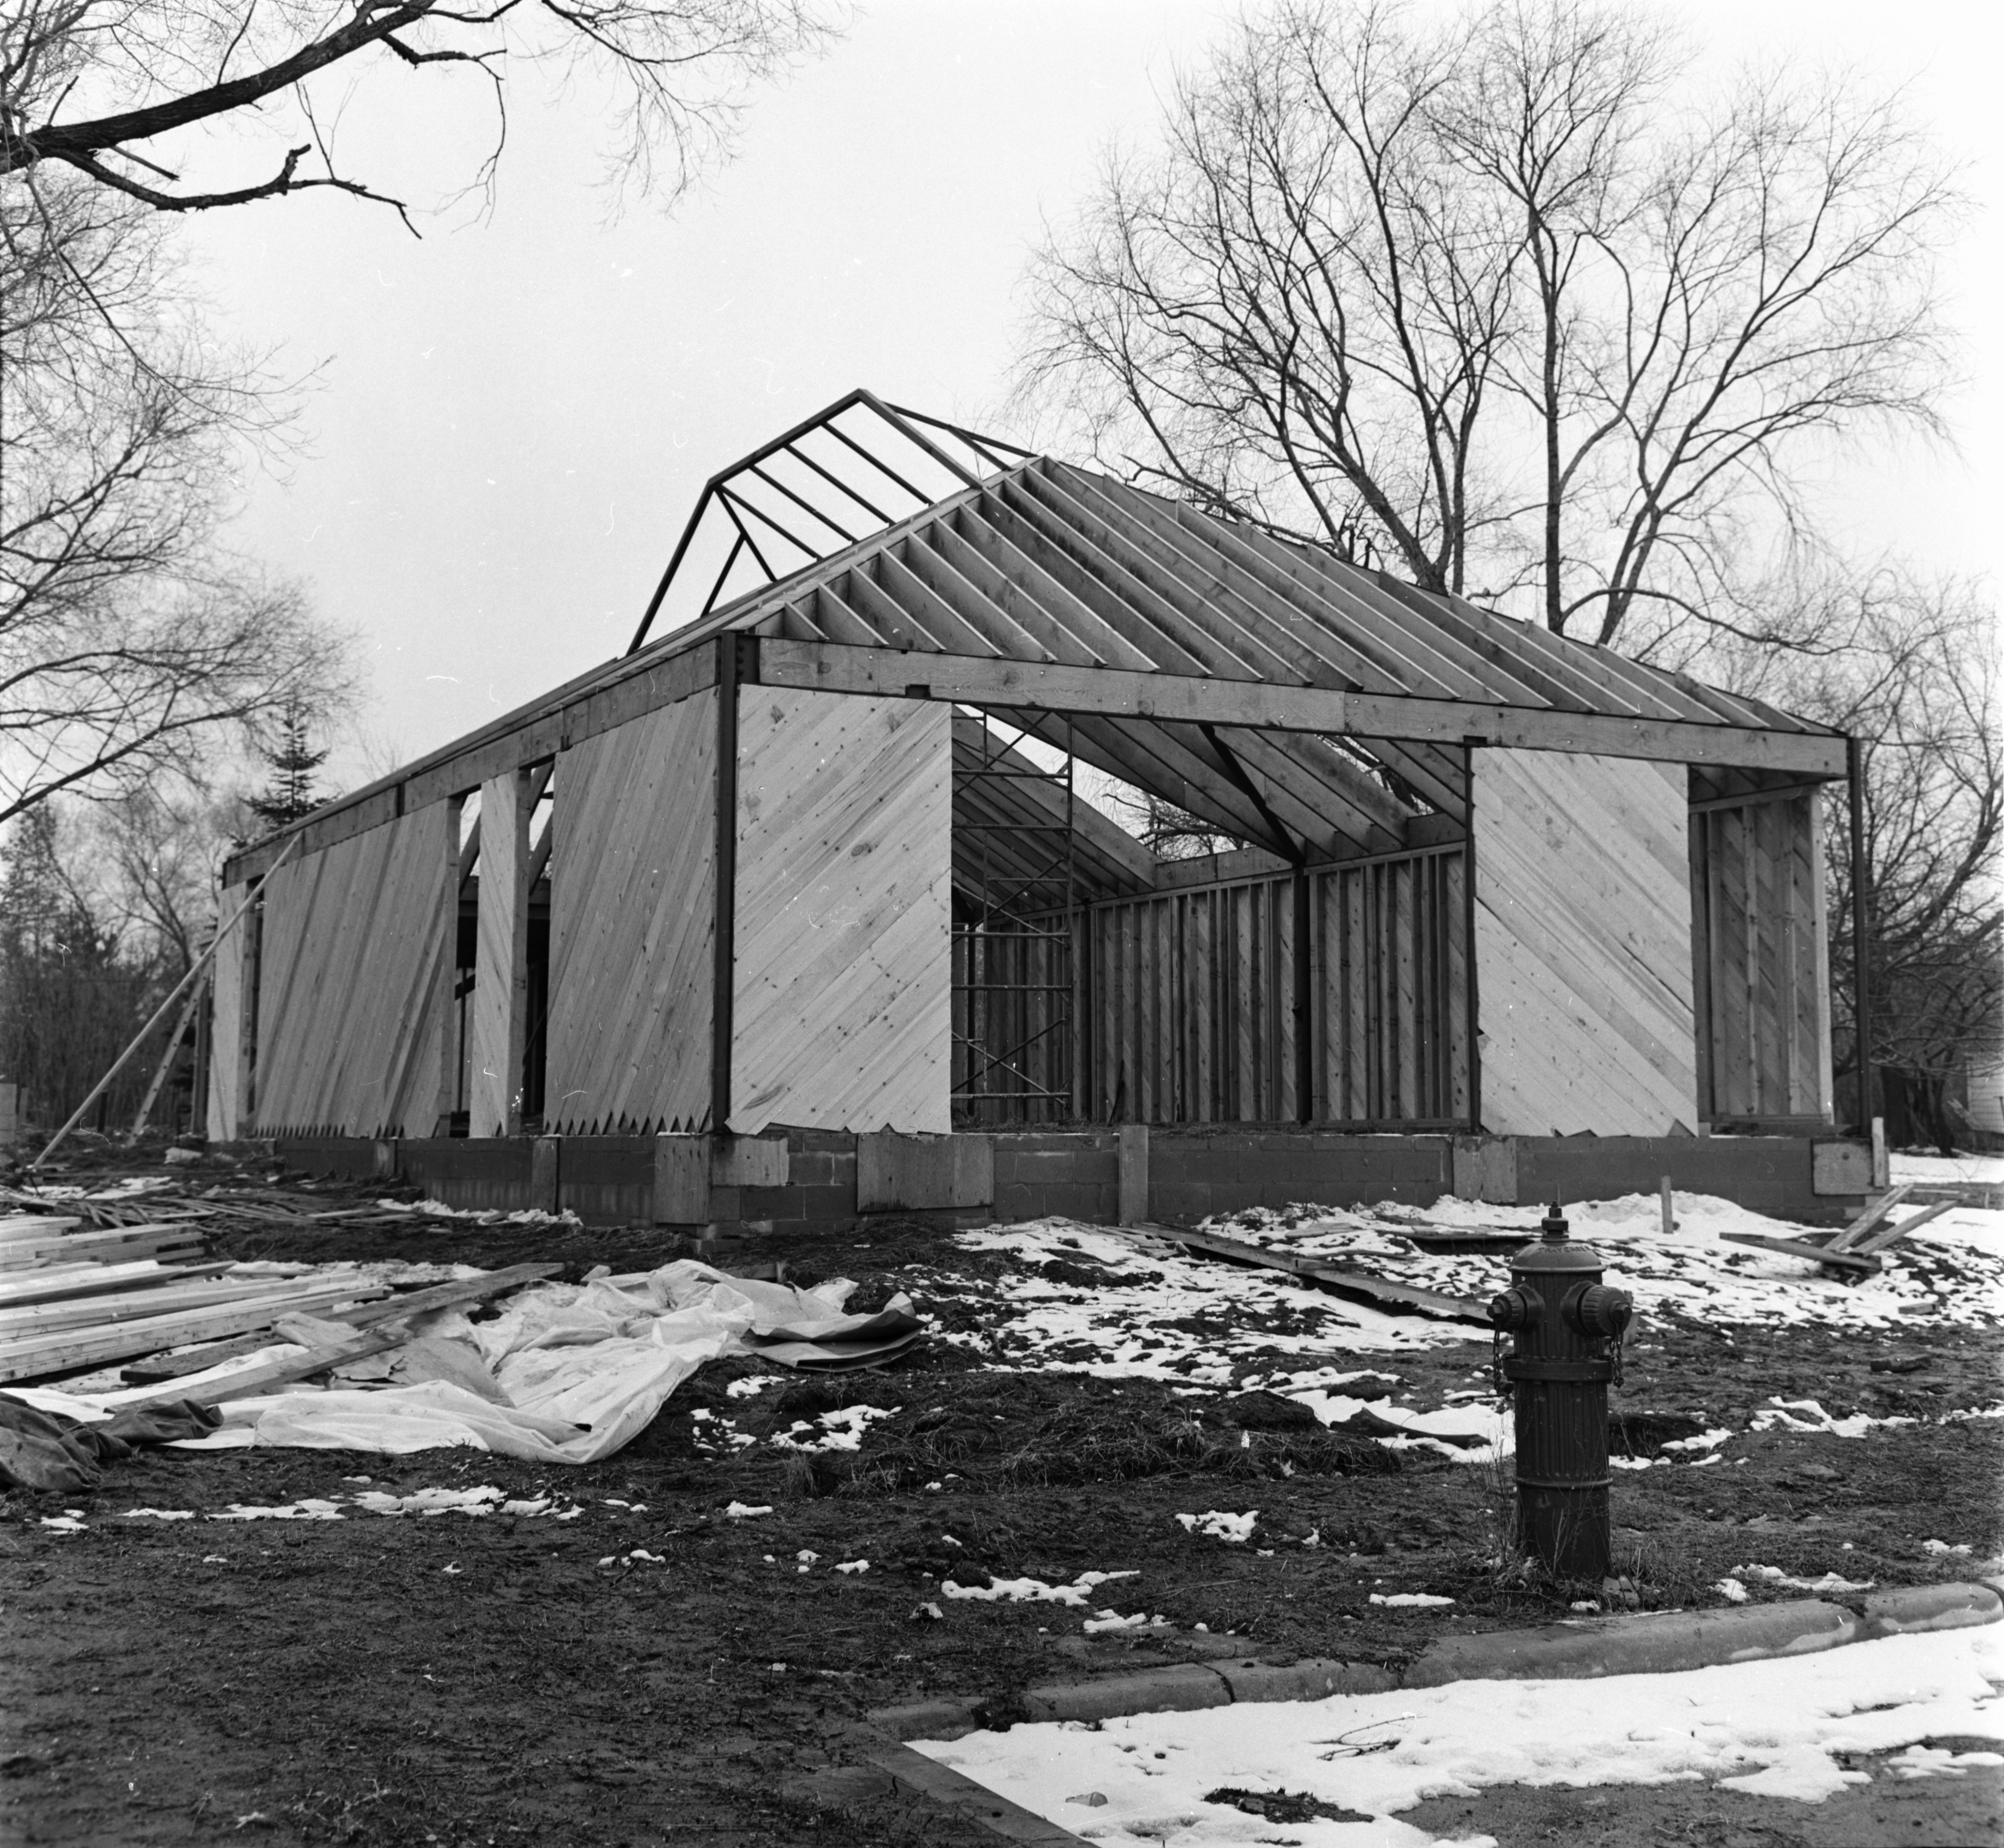 Nellie Seymour Loving Branch Library Under Construction at 3042 Creek Dr, March 1965 image